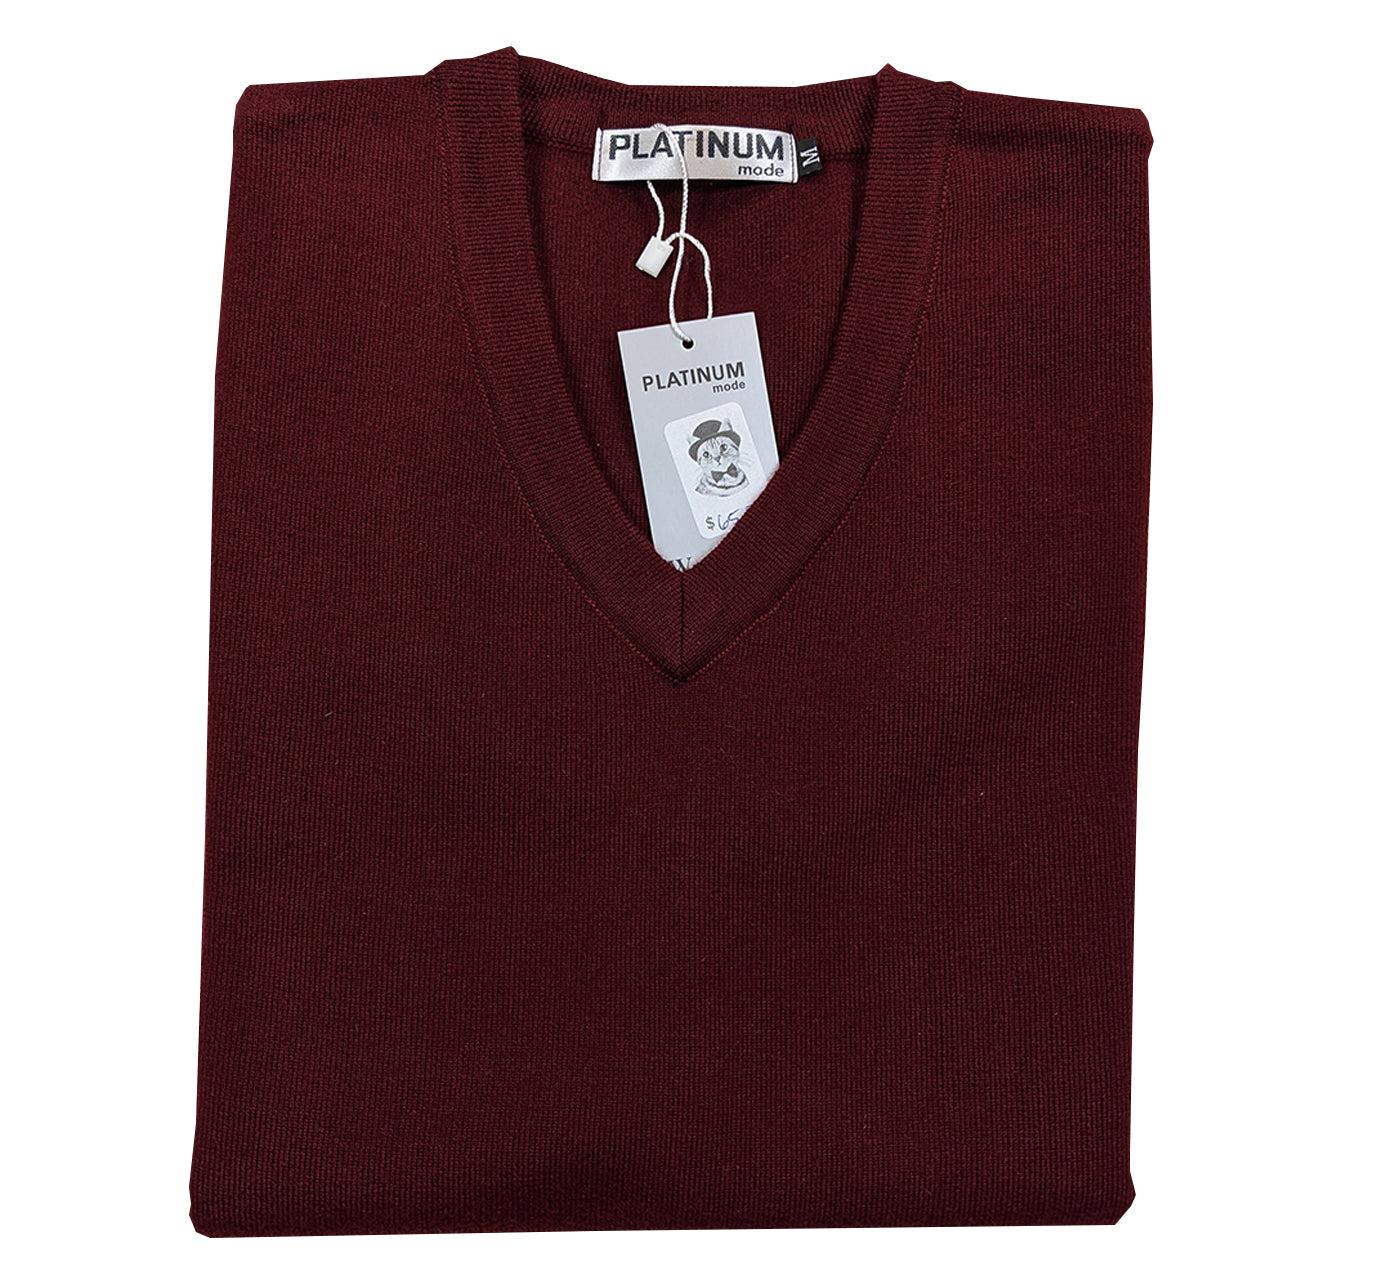 Berkam Sweater Vest - Burgandy